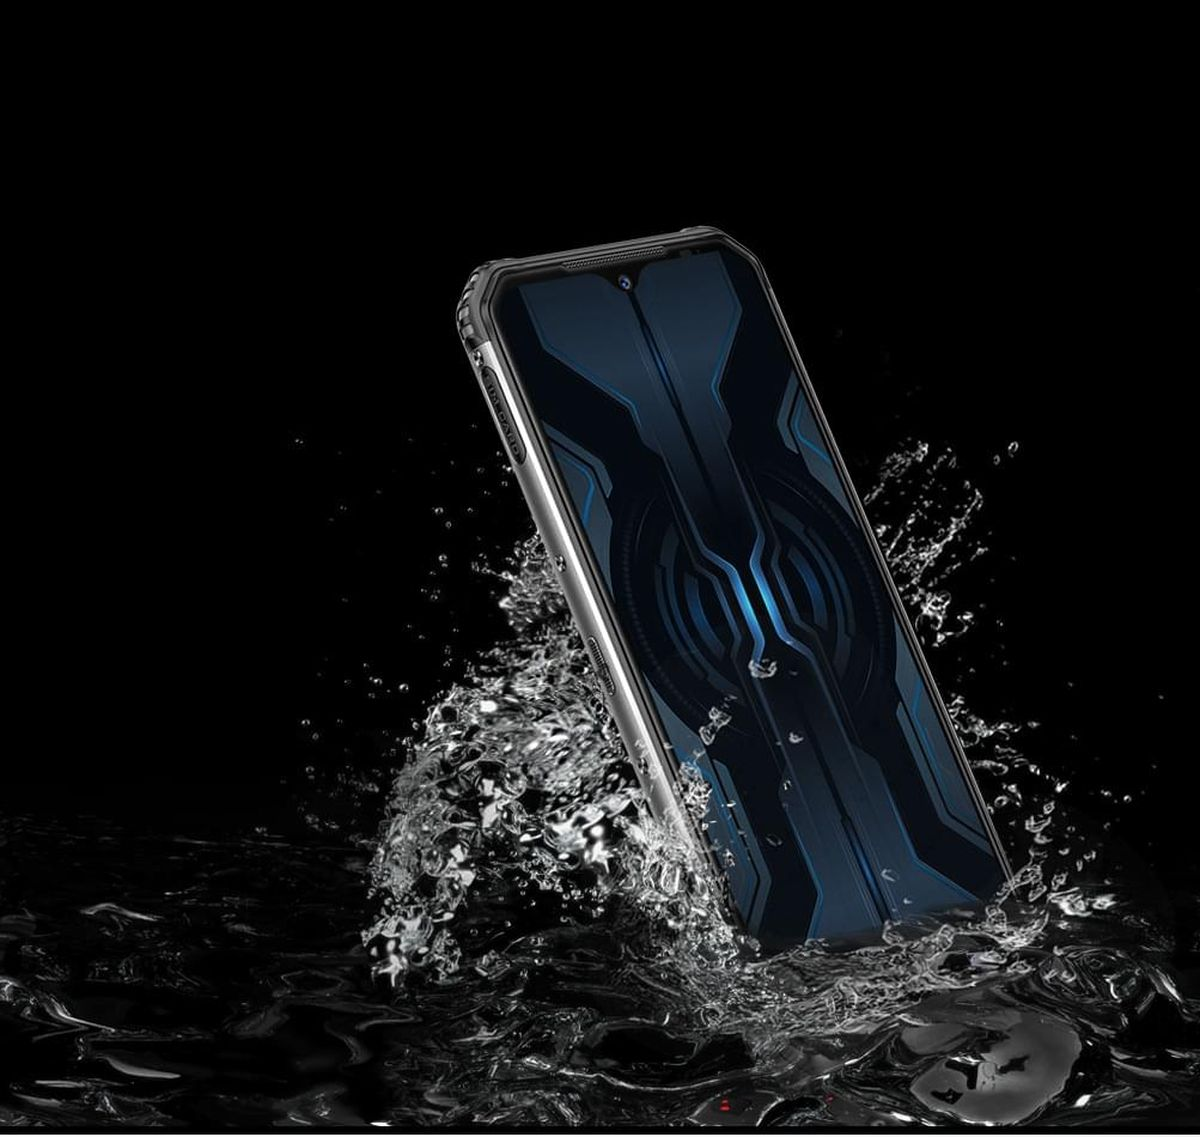 Being a fan of rugged smartphones, I was interested in the Doogee S95 Pro. But I quickly became disillusioned. Many aspects of the phone mean that you should not buy it.